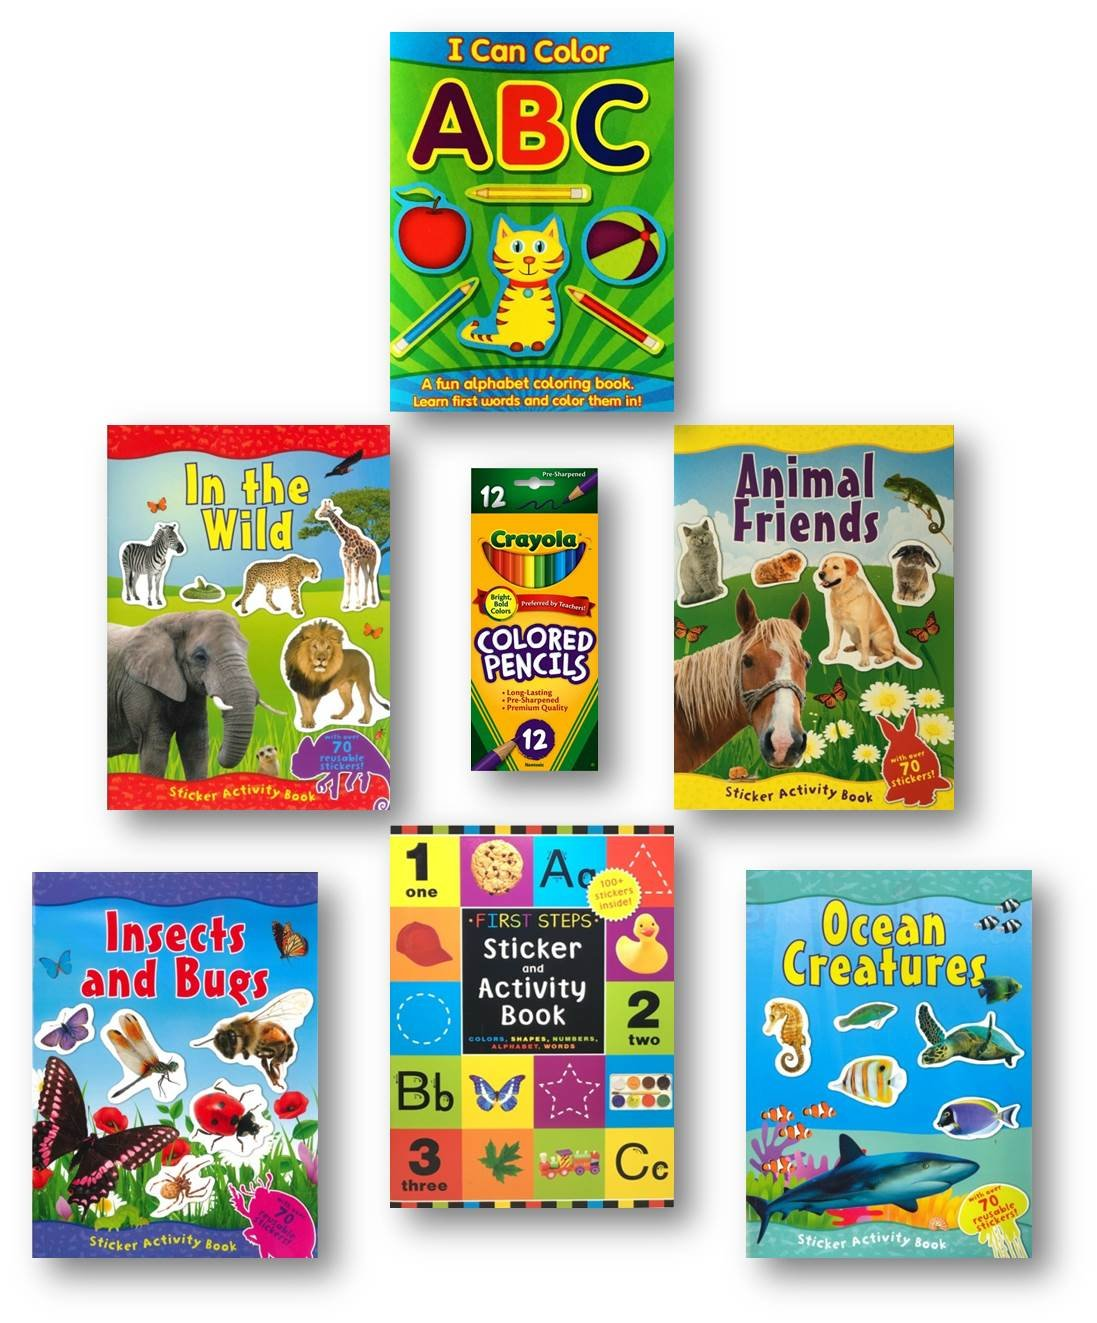 Sticker Books for Kids Girls and Boys, 6-Pack Includes Four Animal Themed Sticker Books, a First Steps Sticker and Activity Book, an ABC Coloring Book and a Box of 12 Colored Pencils